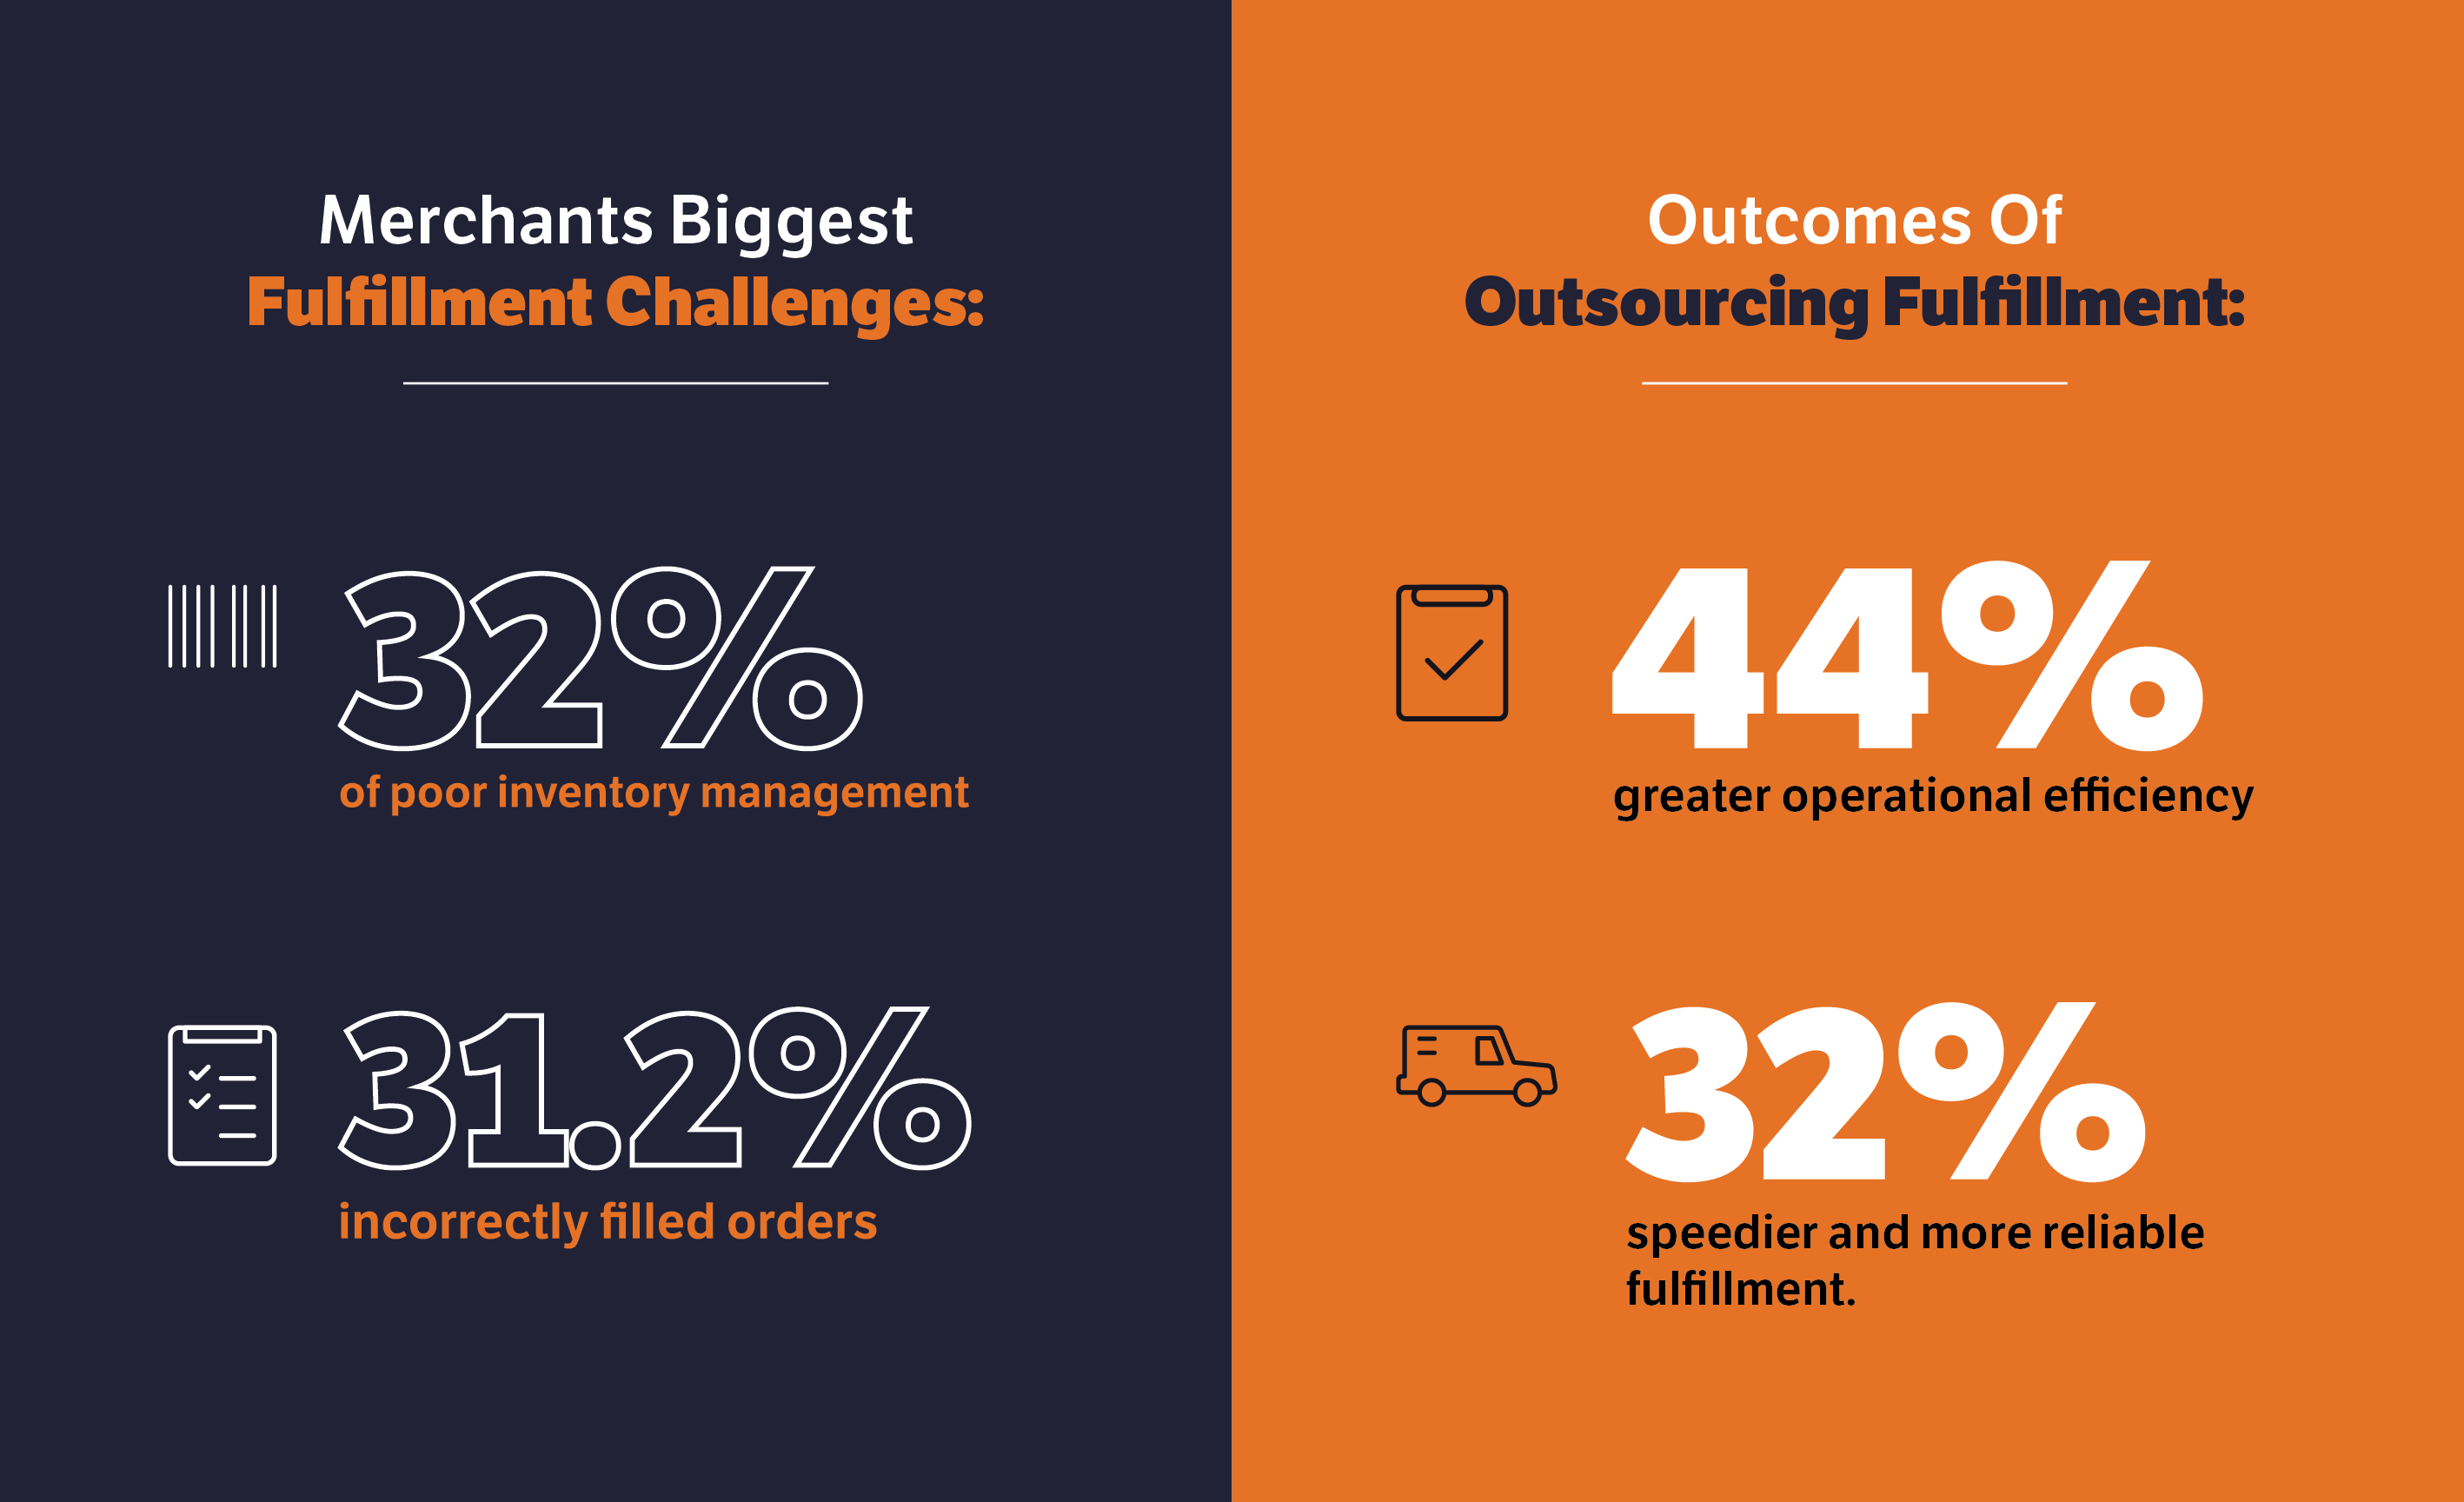 Challenges: 32% Inventory management, 31.2% Incorrect orders. Outsourced: 44% efficiency, 32% fast, reliable fulfillment